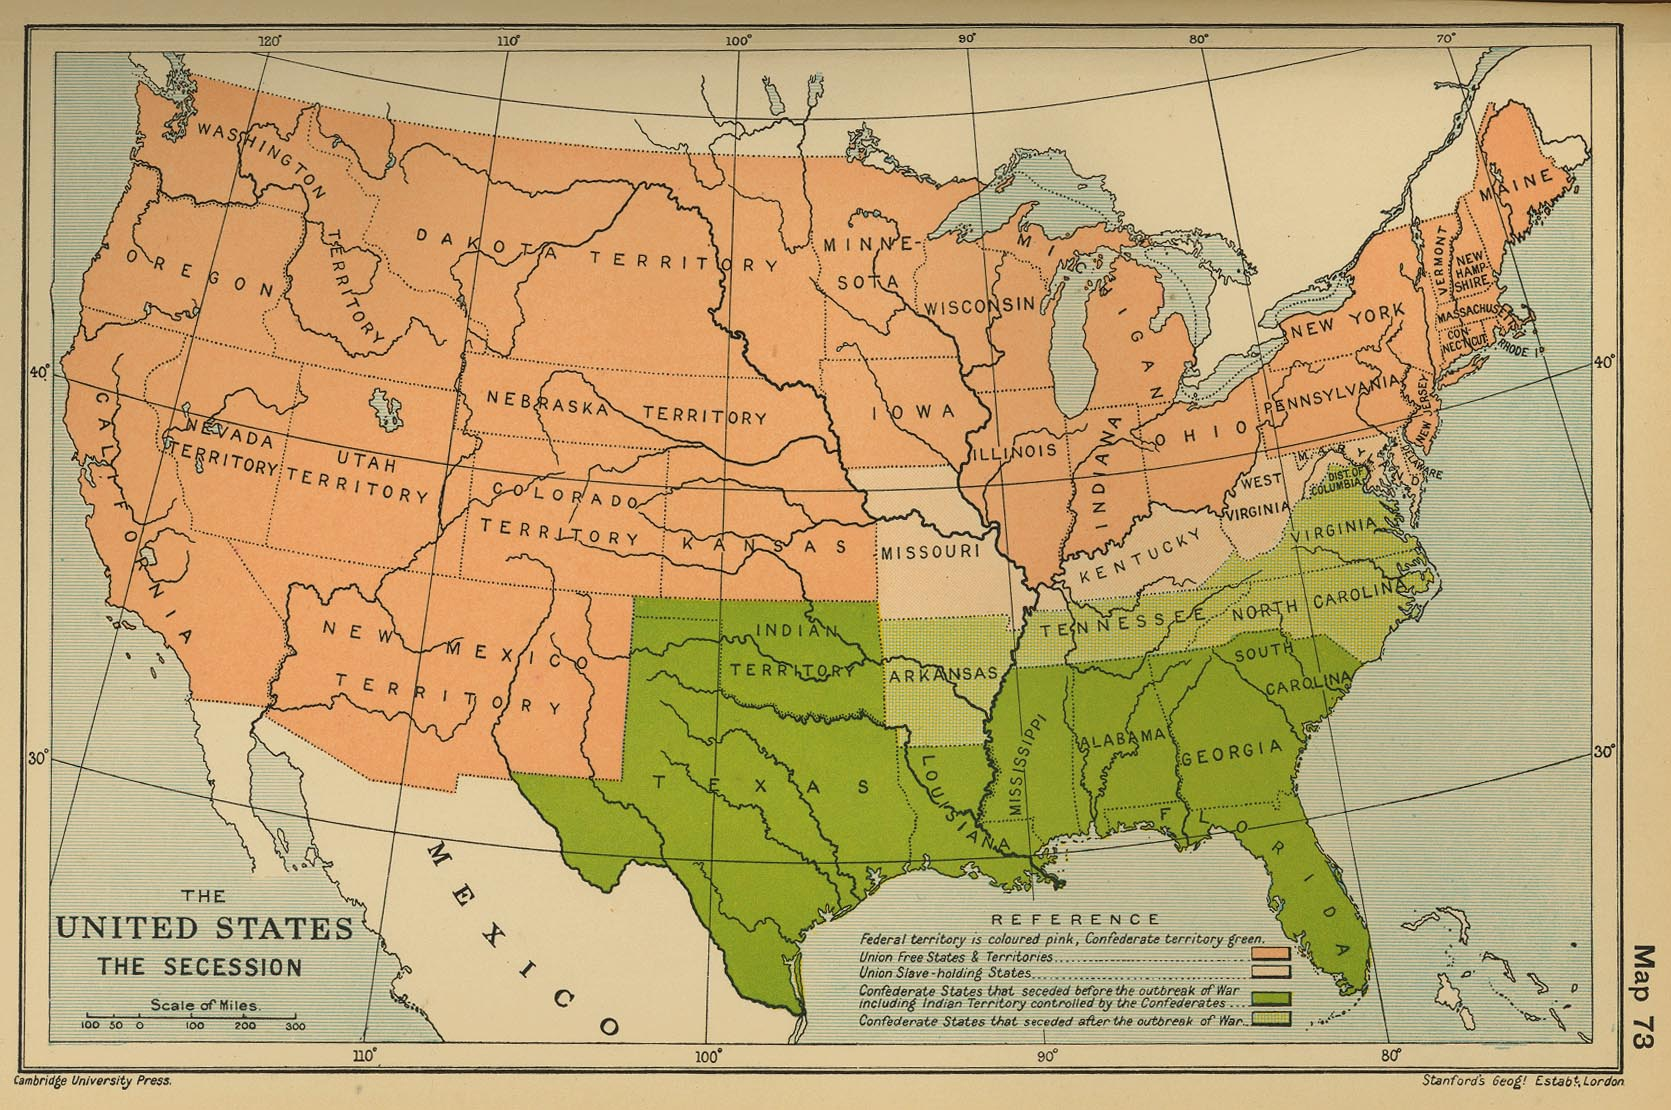 Map Of The United States The Secession - Give me the map of the united states